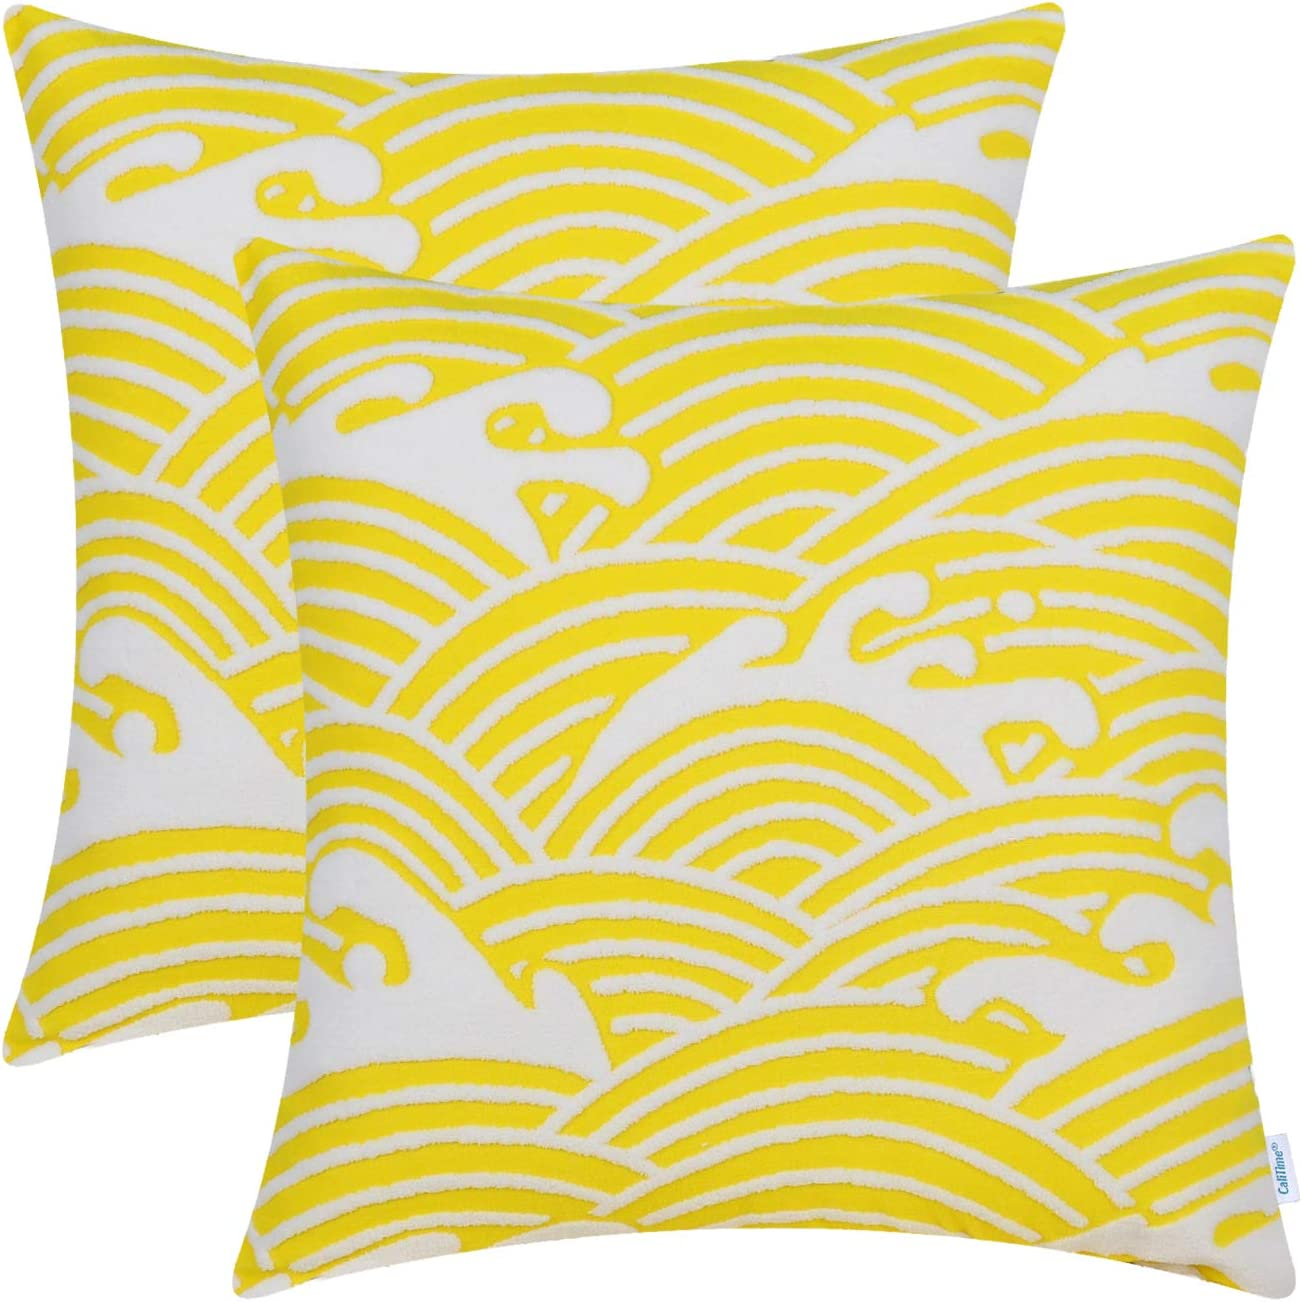 CaliTime Pack of 2 Supersoft Throw Pillow Covers Cases for Couch Sofa Bed Bedding Fluffy White Ocean Waves 18 X 18 Inches Vibrant Yellow